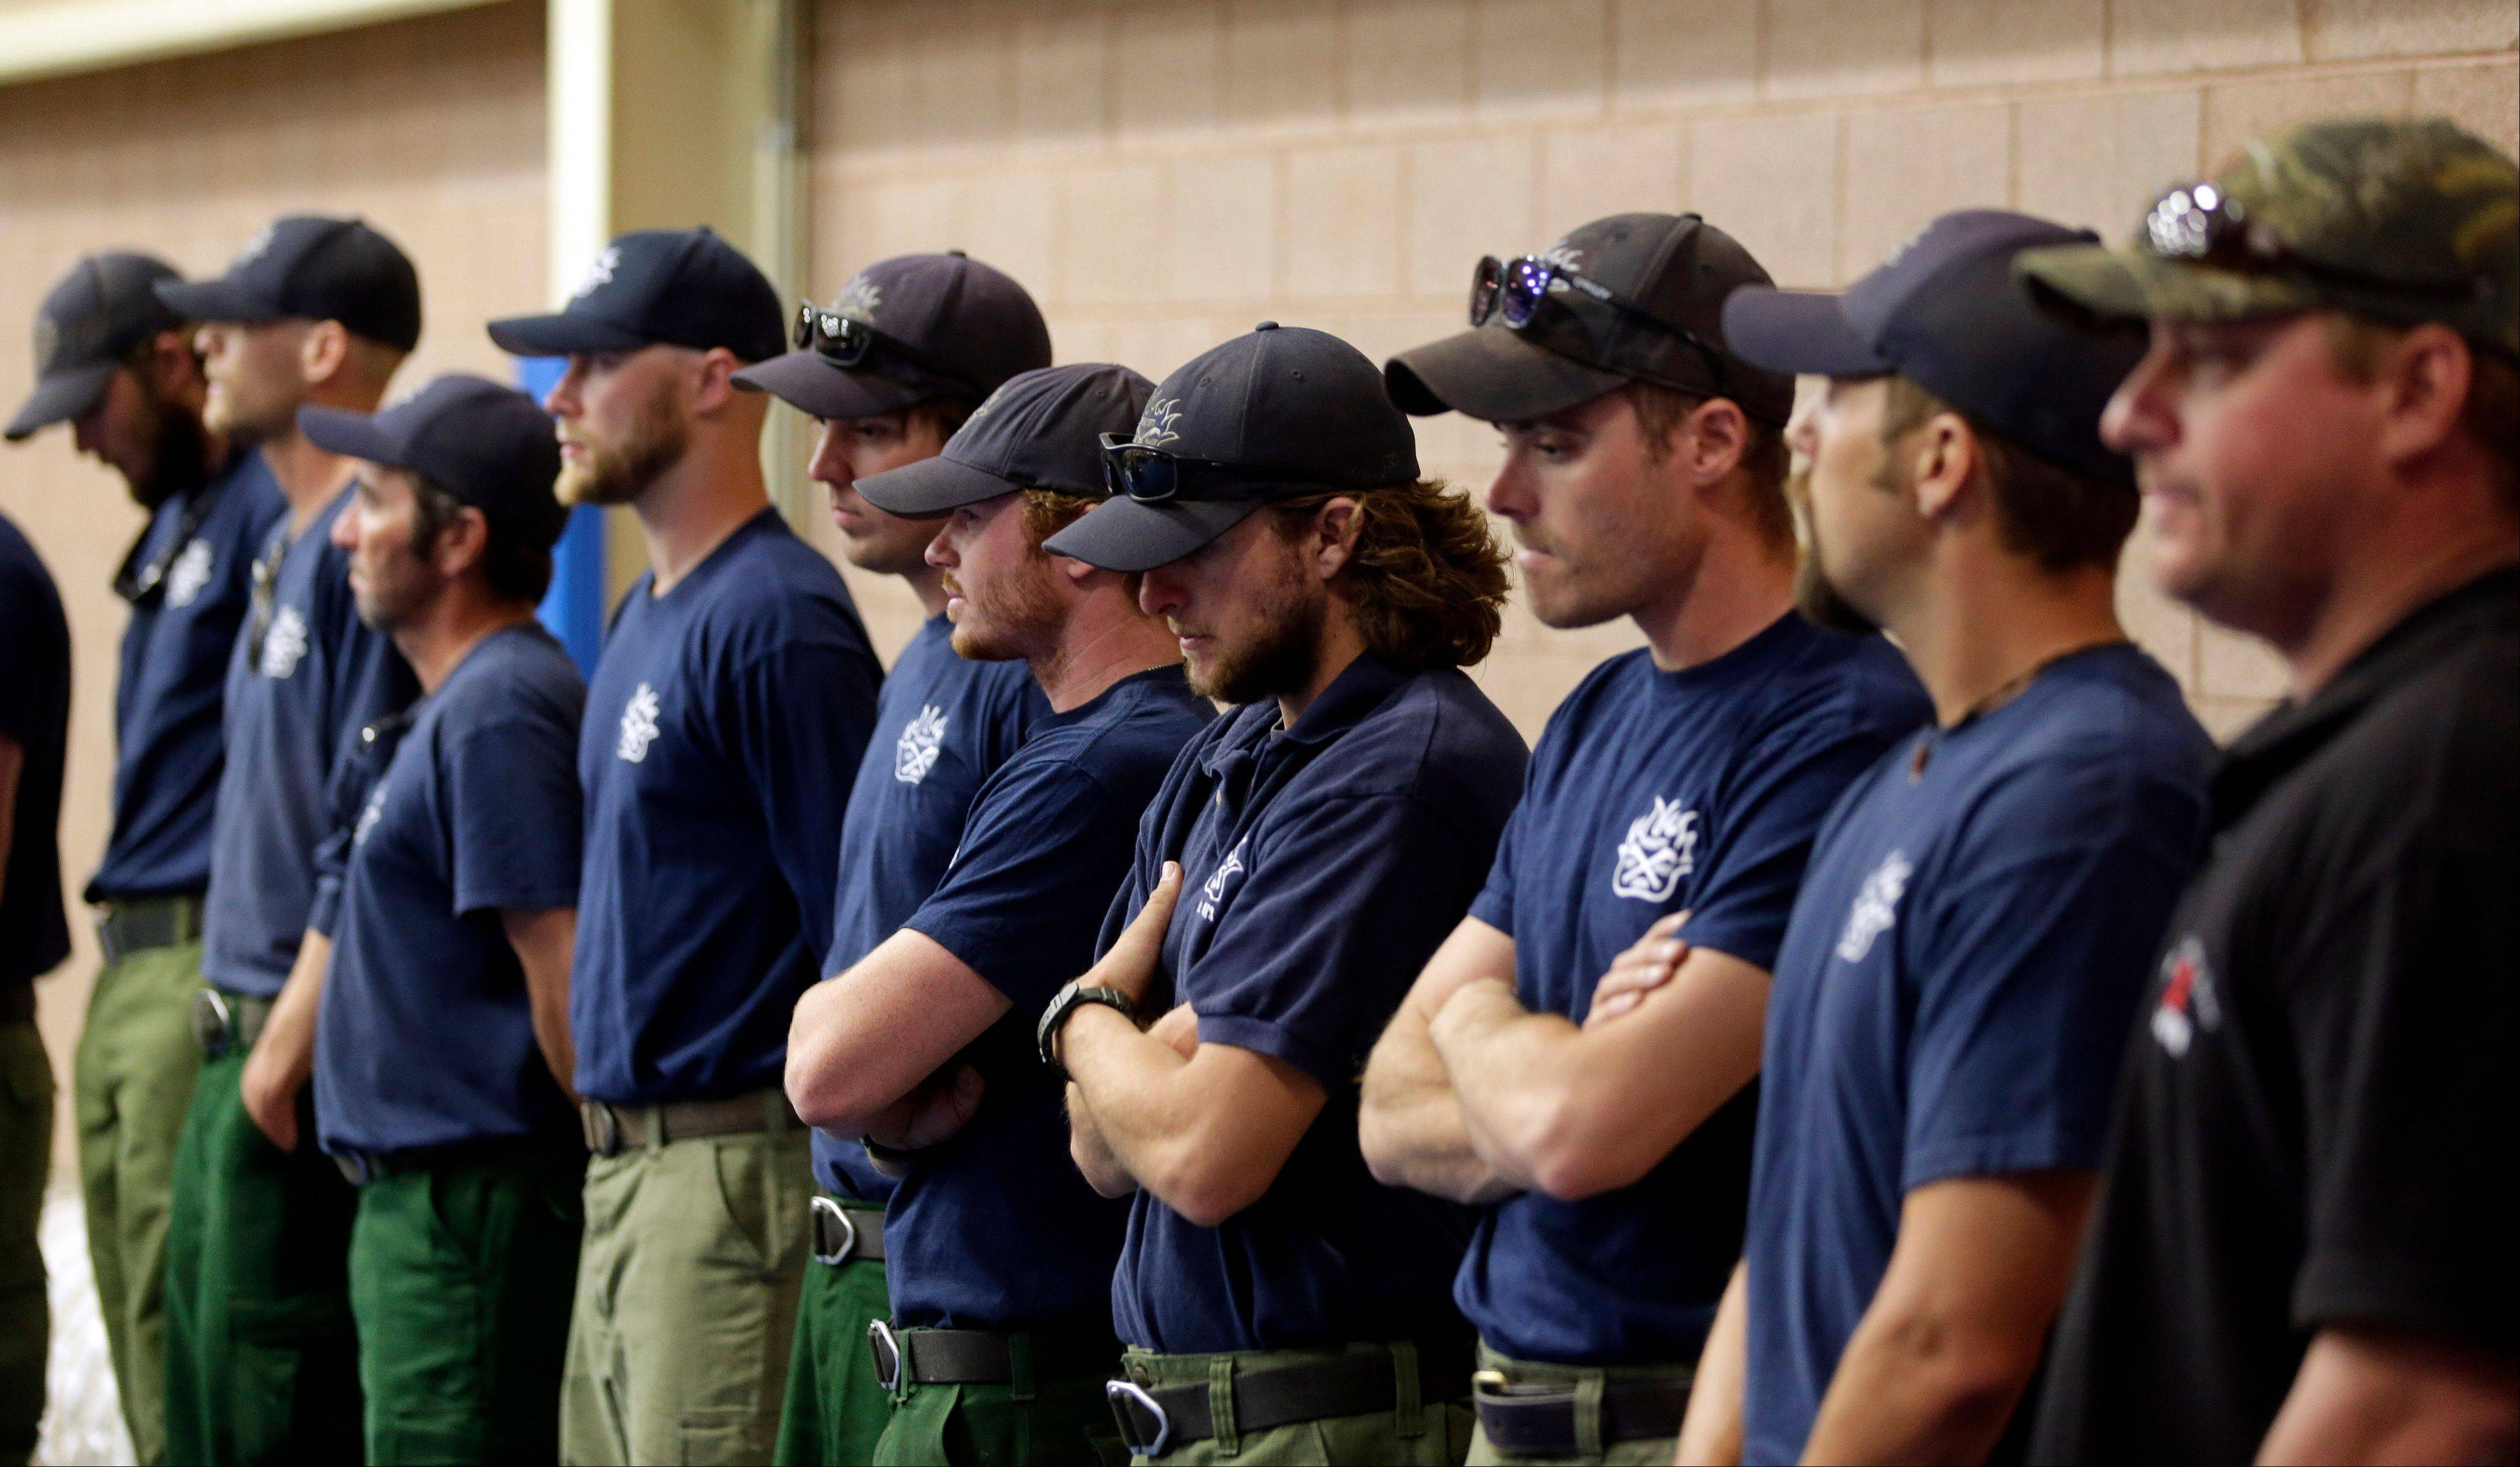 Firefighters wait to go inside for a memorial service in Prescott, Ariz., Monday, July 1, 2013. The firefighters were honoring 19 Granite Mountain Hotshot firefighters who were killed while battling an out-of-control wildfire near Yarnell, Ariz., on Sunday.